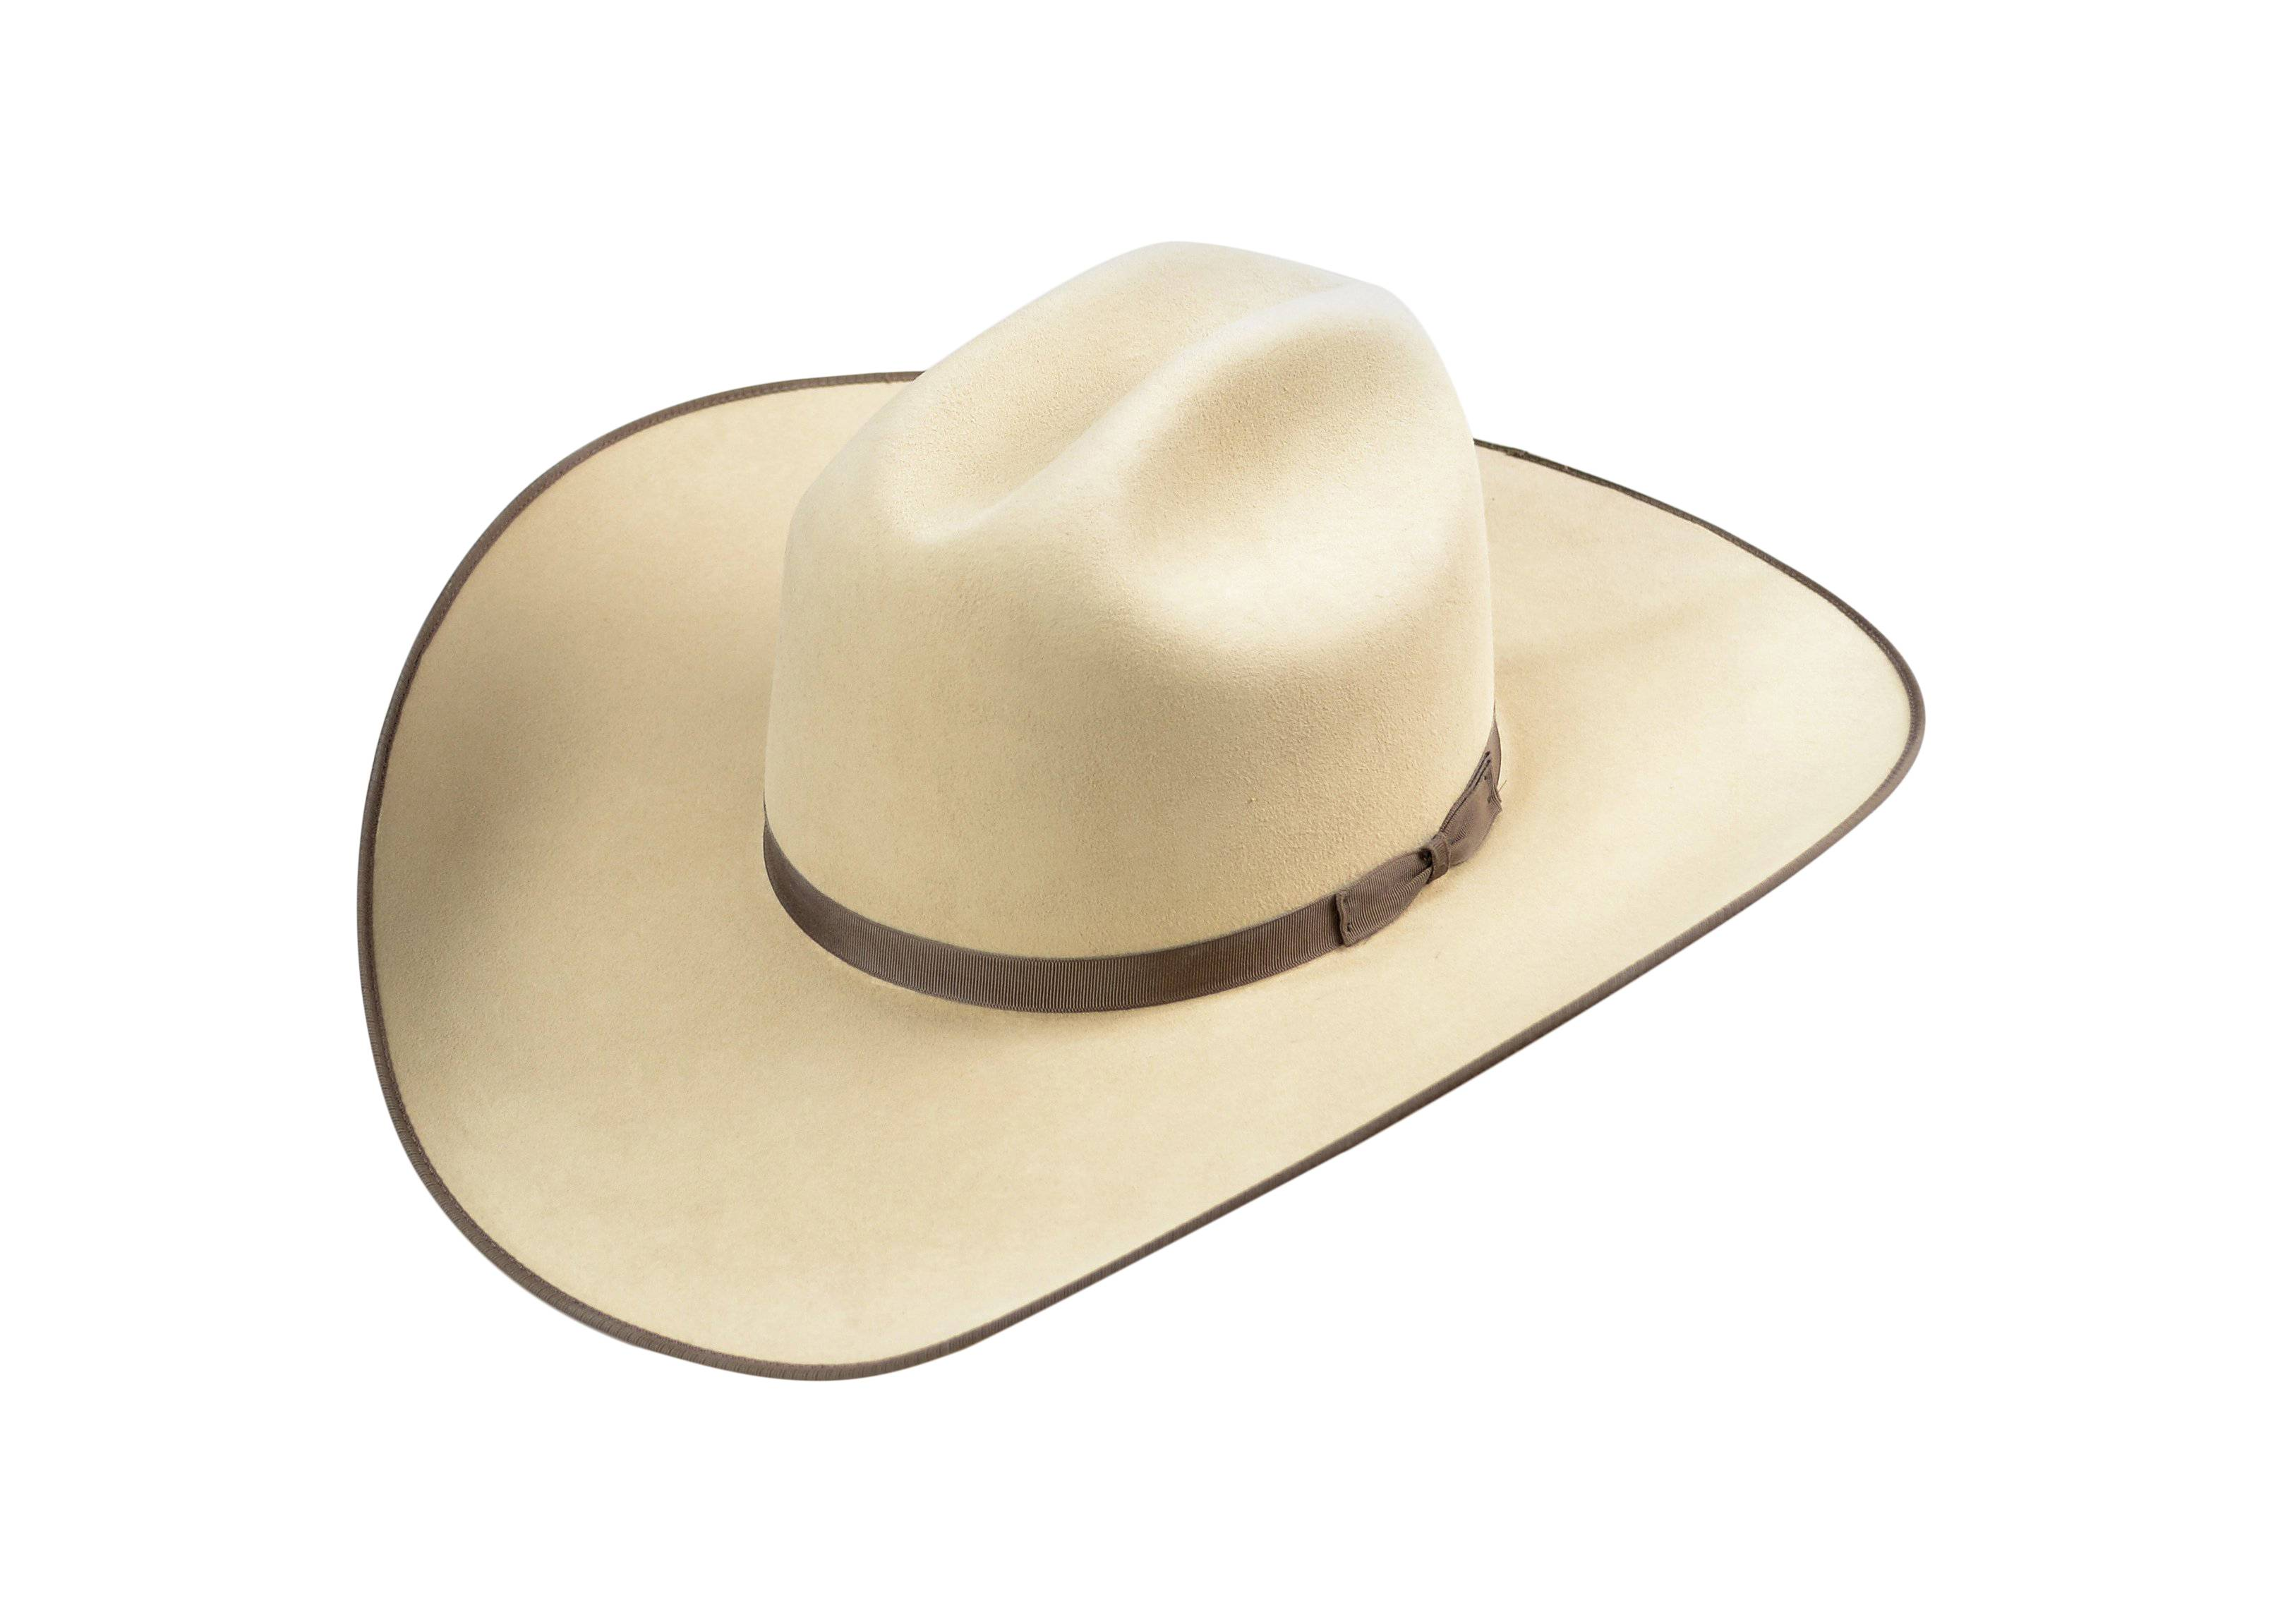 Serratelli 8X Cattleman6 Shovel V Wool Felt Hat - Long Oval